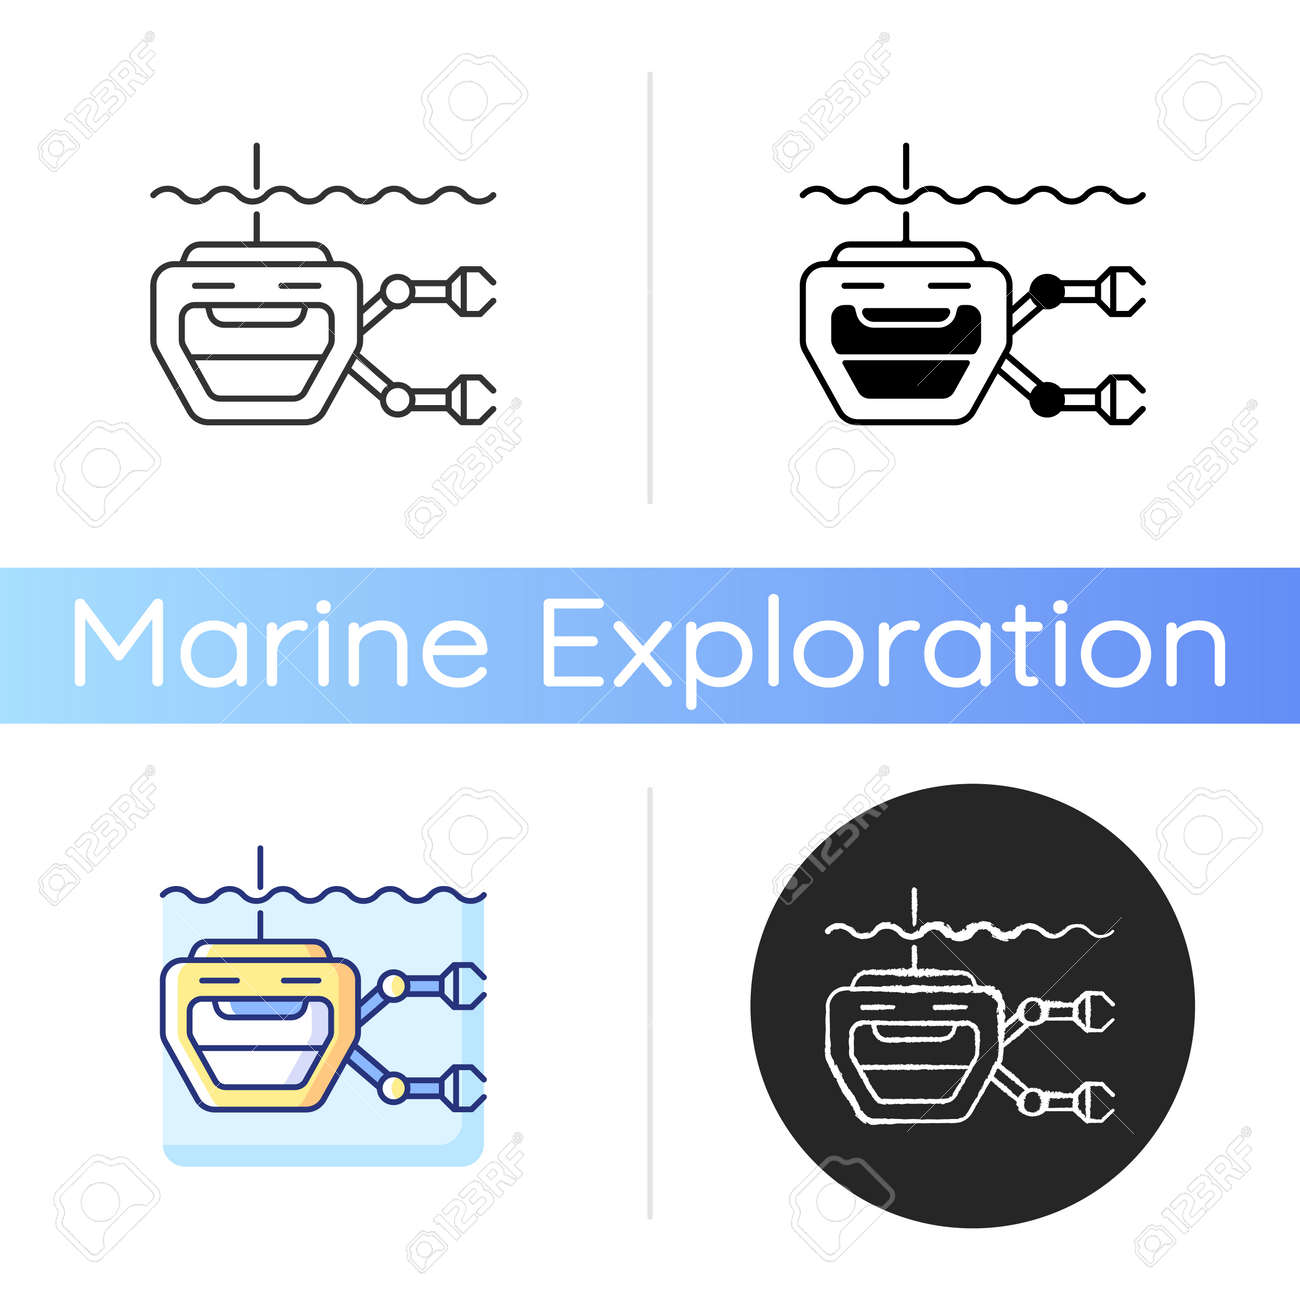 ROV icon. Remotely operated underwater vehicle is tethered underwater highly maneuverable mobile device. Linear black and RGB color styles. Isolated vector illustrations - 167331047